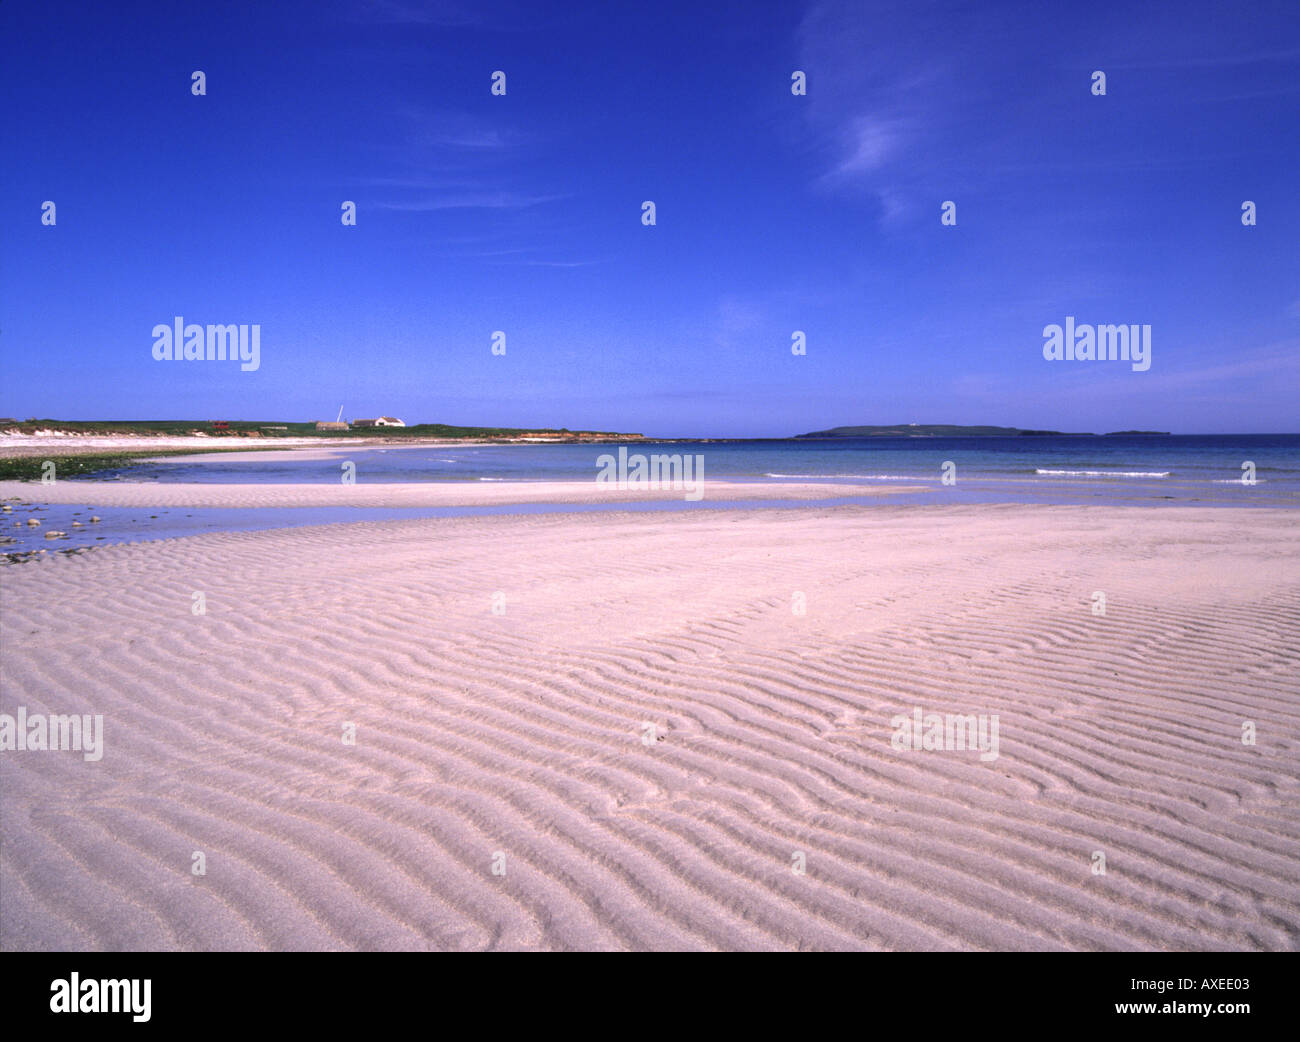 dh Newark Bay DEERNESS ORKNEY White sandy beach bay and island of Copinsay tranquil scotland Stock Photo